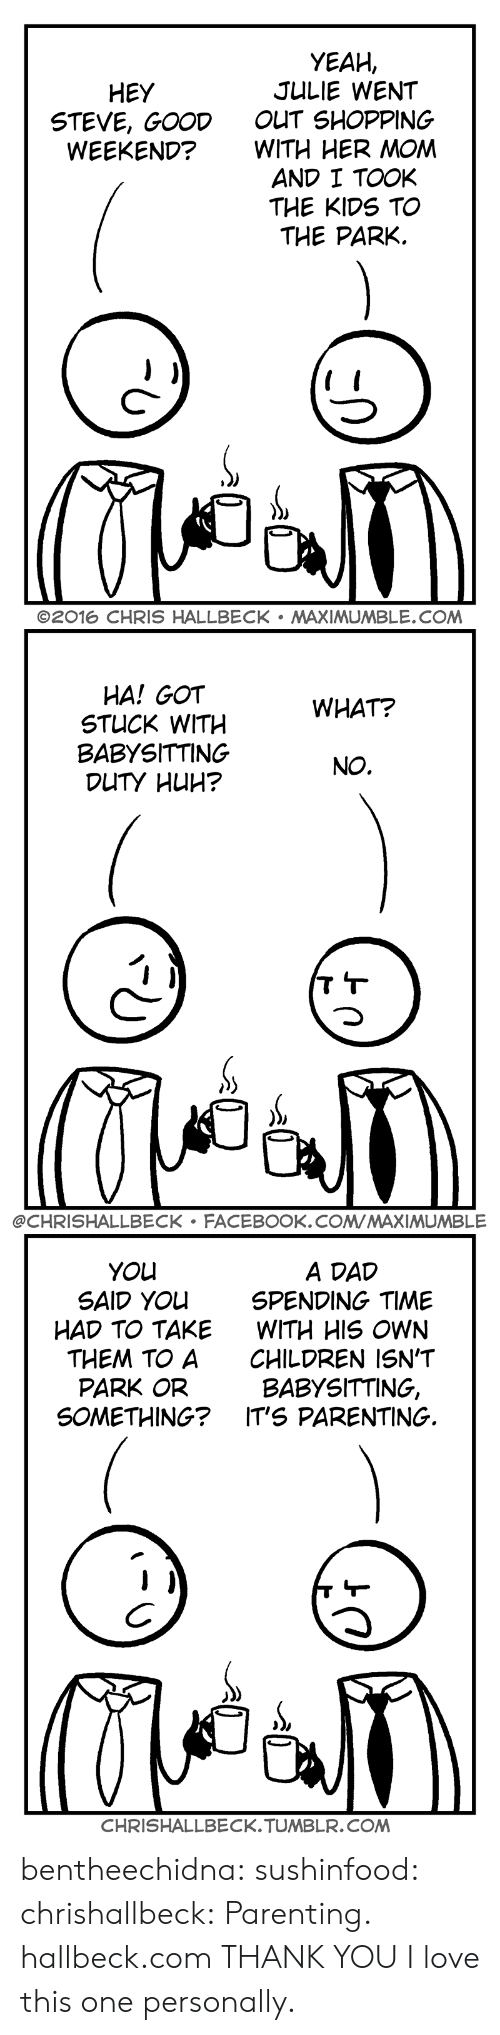 babysitting: YEAH,  JULIE WENT  OUT SHOPPING  WITH HER MOM  AND I TOOK  THE KIDS TO  THE PARK.  HEY  STEVE, GOOD  WEEKEND?  C-  ©2016 CHRIS HALLBECK . MAXIMUMBLE.COM   HA! GOT  STUCK WITH  BABYSITTING  WHAT?  NO.  @CHRISHALLBECK FACEBOOK.COMMAXIMUMBLE   A DAD  SPENDING TIME  WITH HIS OWN  CHILDREN ISN'T  BABYSITTING,  YOu  SAID YOu  HAD TO TAKE  THEM TO A  PARK OR  SOMETHING? IT'S PARENTING.  CHRISHALLBECK.TUMBLR.COM bentheechidna:  sushinfood:  chrishallbeck:  Parenting. hallbeck.com  THANK YOU  I love this one personally.